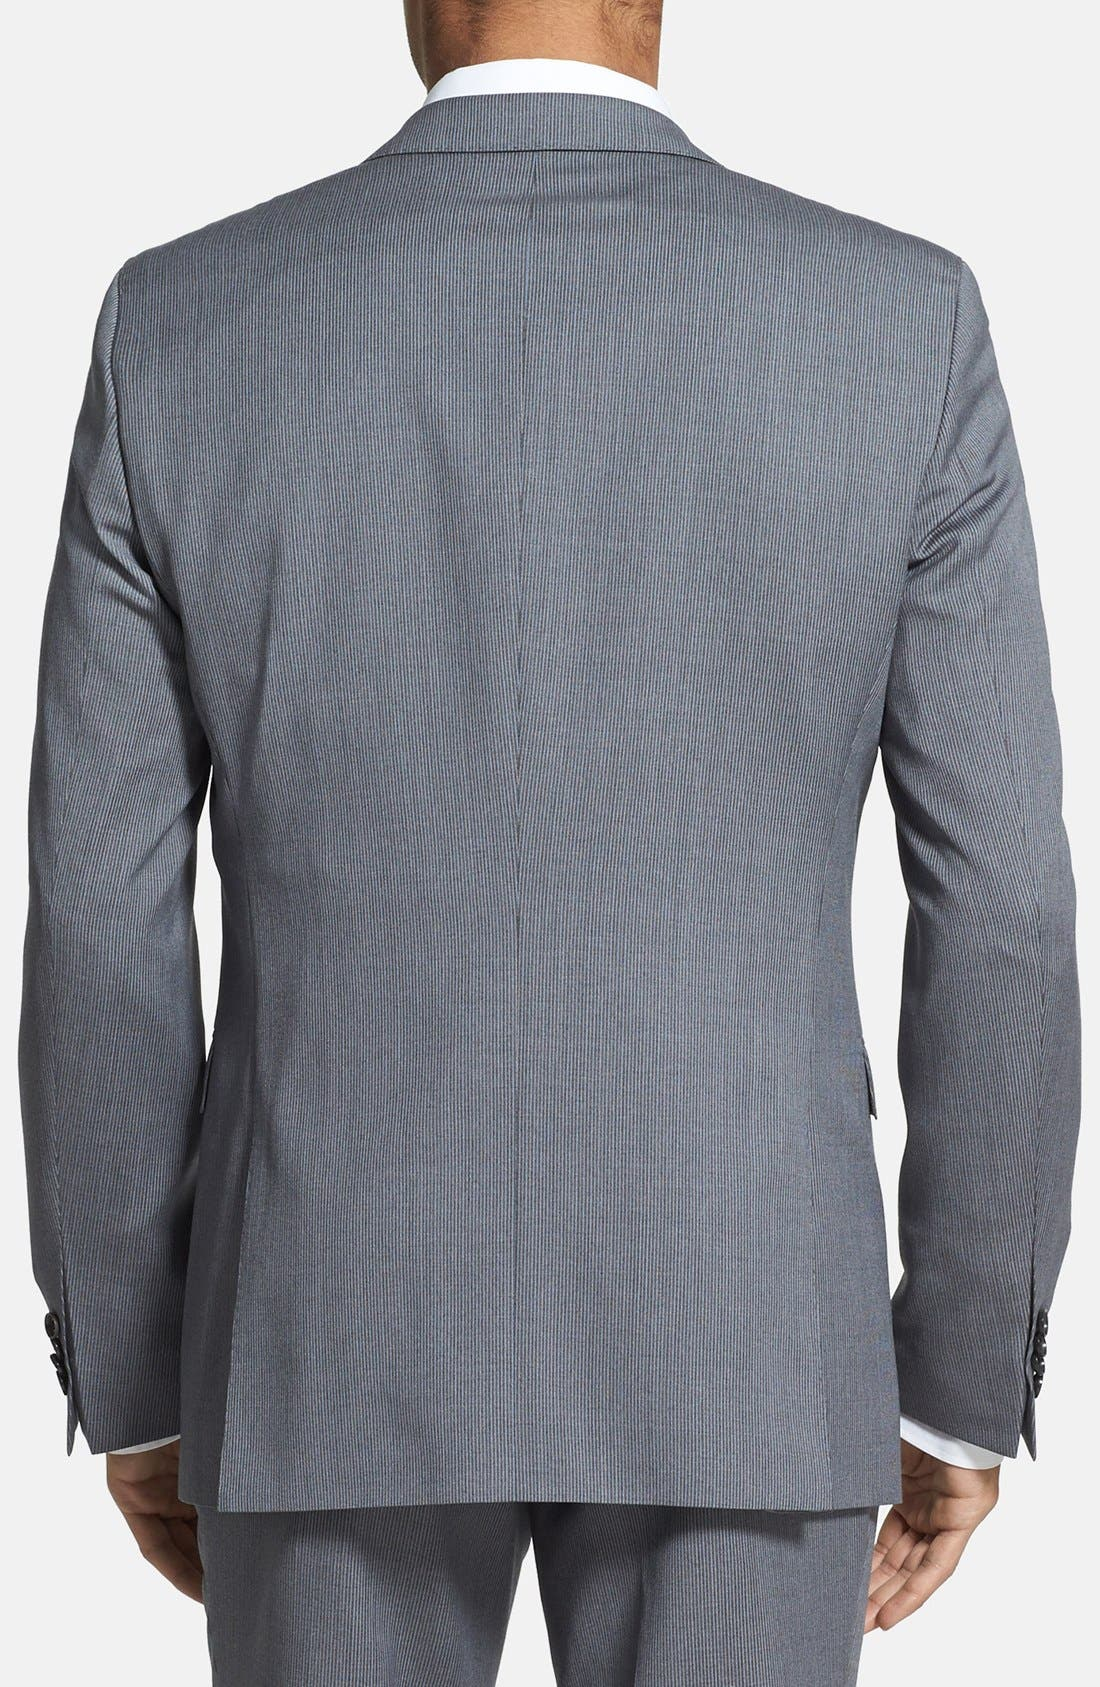 ZZDNUHUGO BOSS,                             BOSS HUGO BOSS 'Ryan/Win' Extra Trim Fit Stripe Suit,                             Alternate thumbnail 3, color,                             030